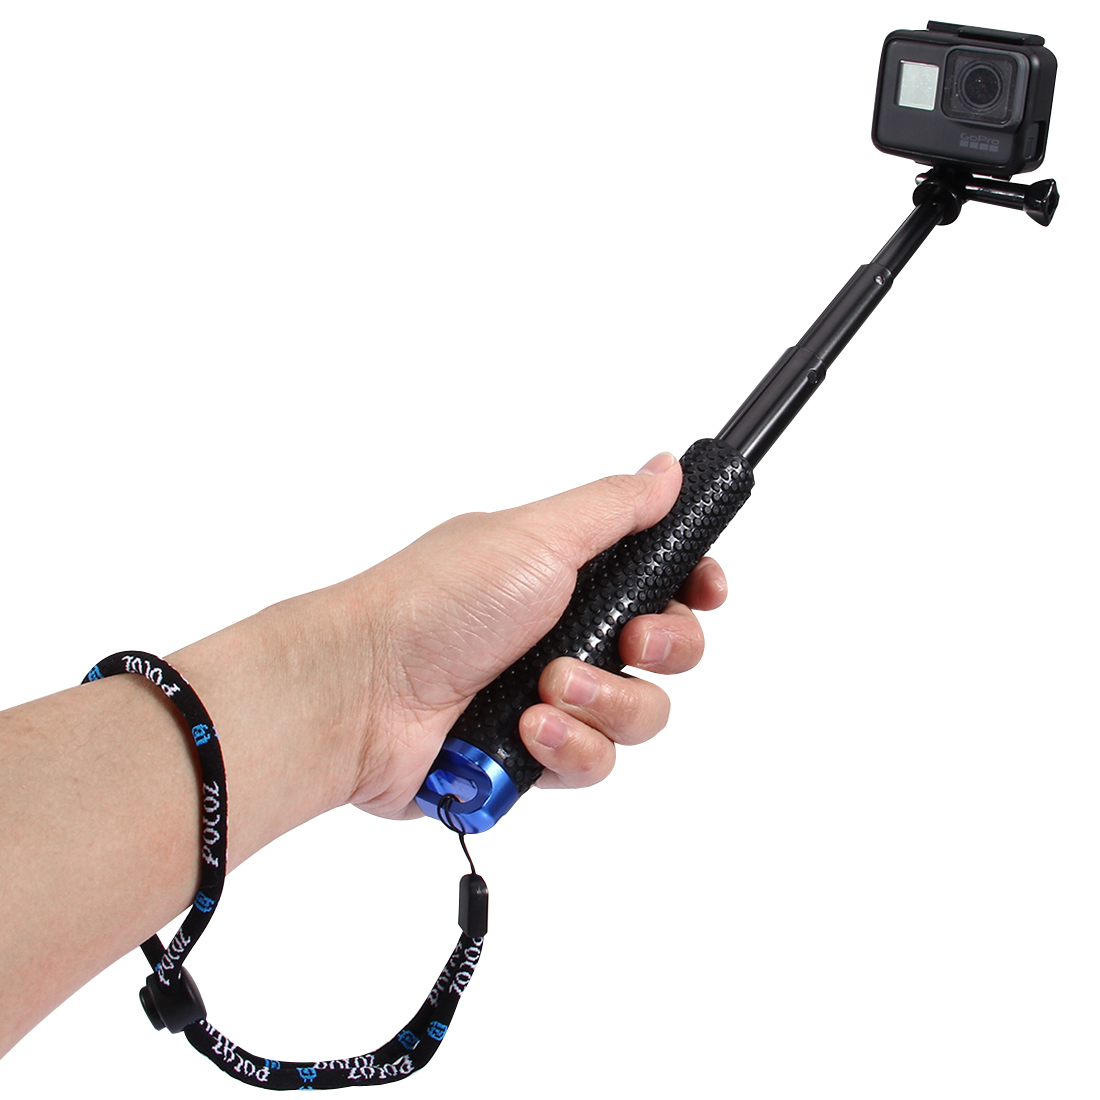 PULUZ PU150 Handheld Extendable Pole ...